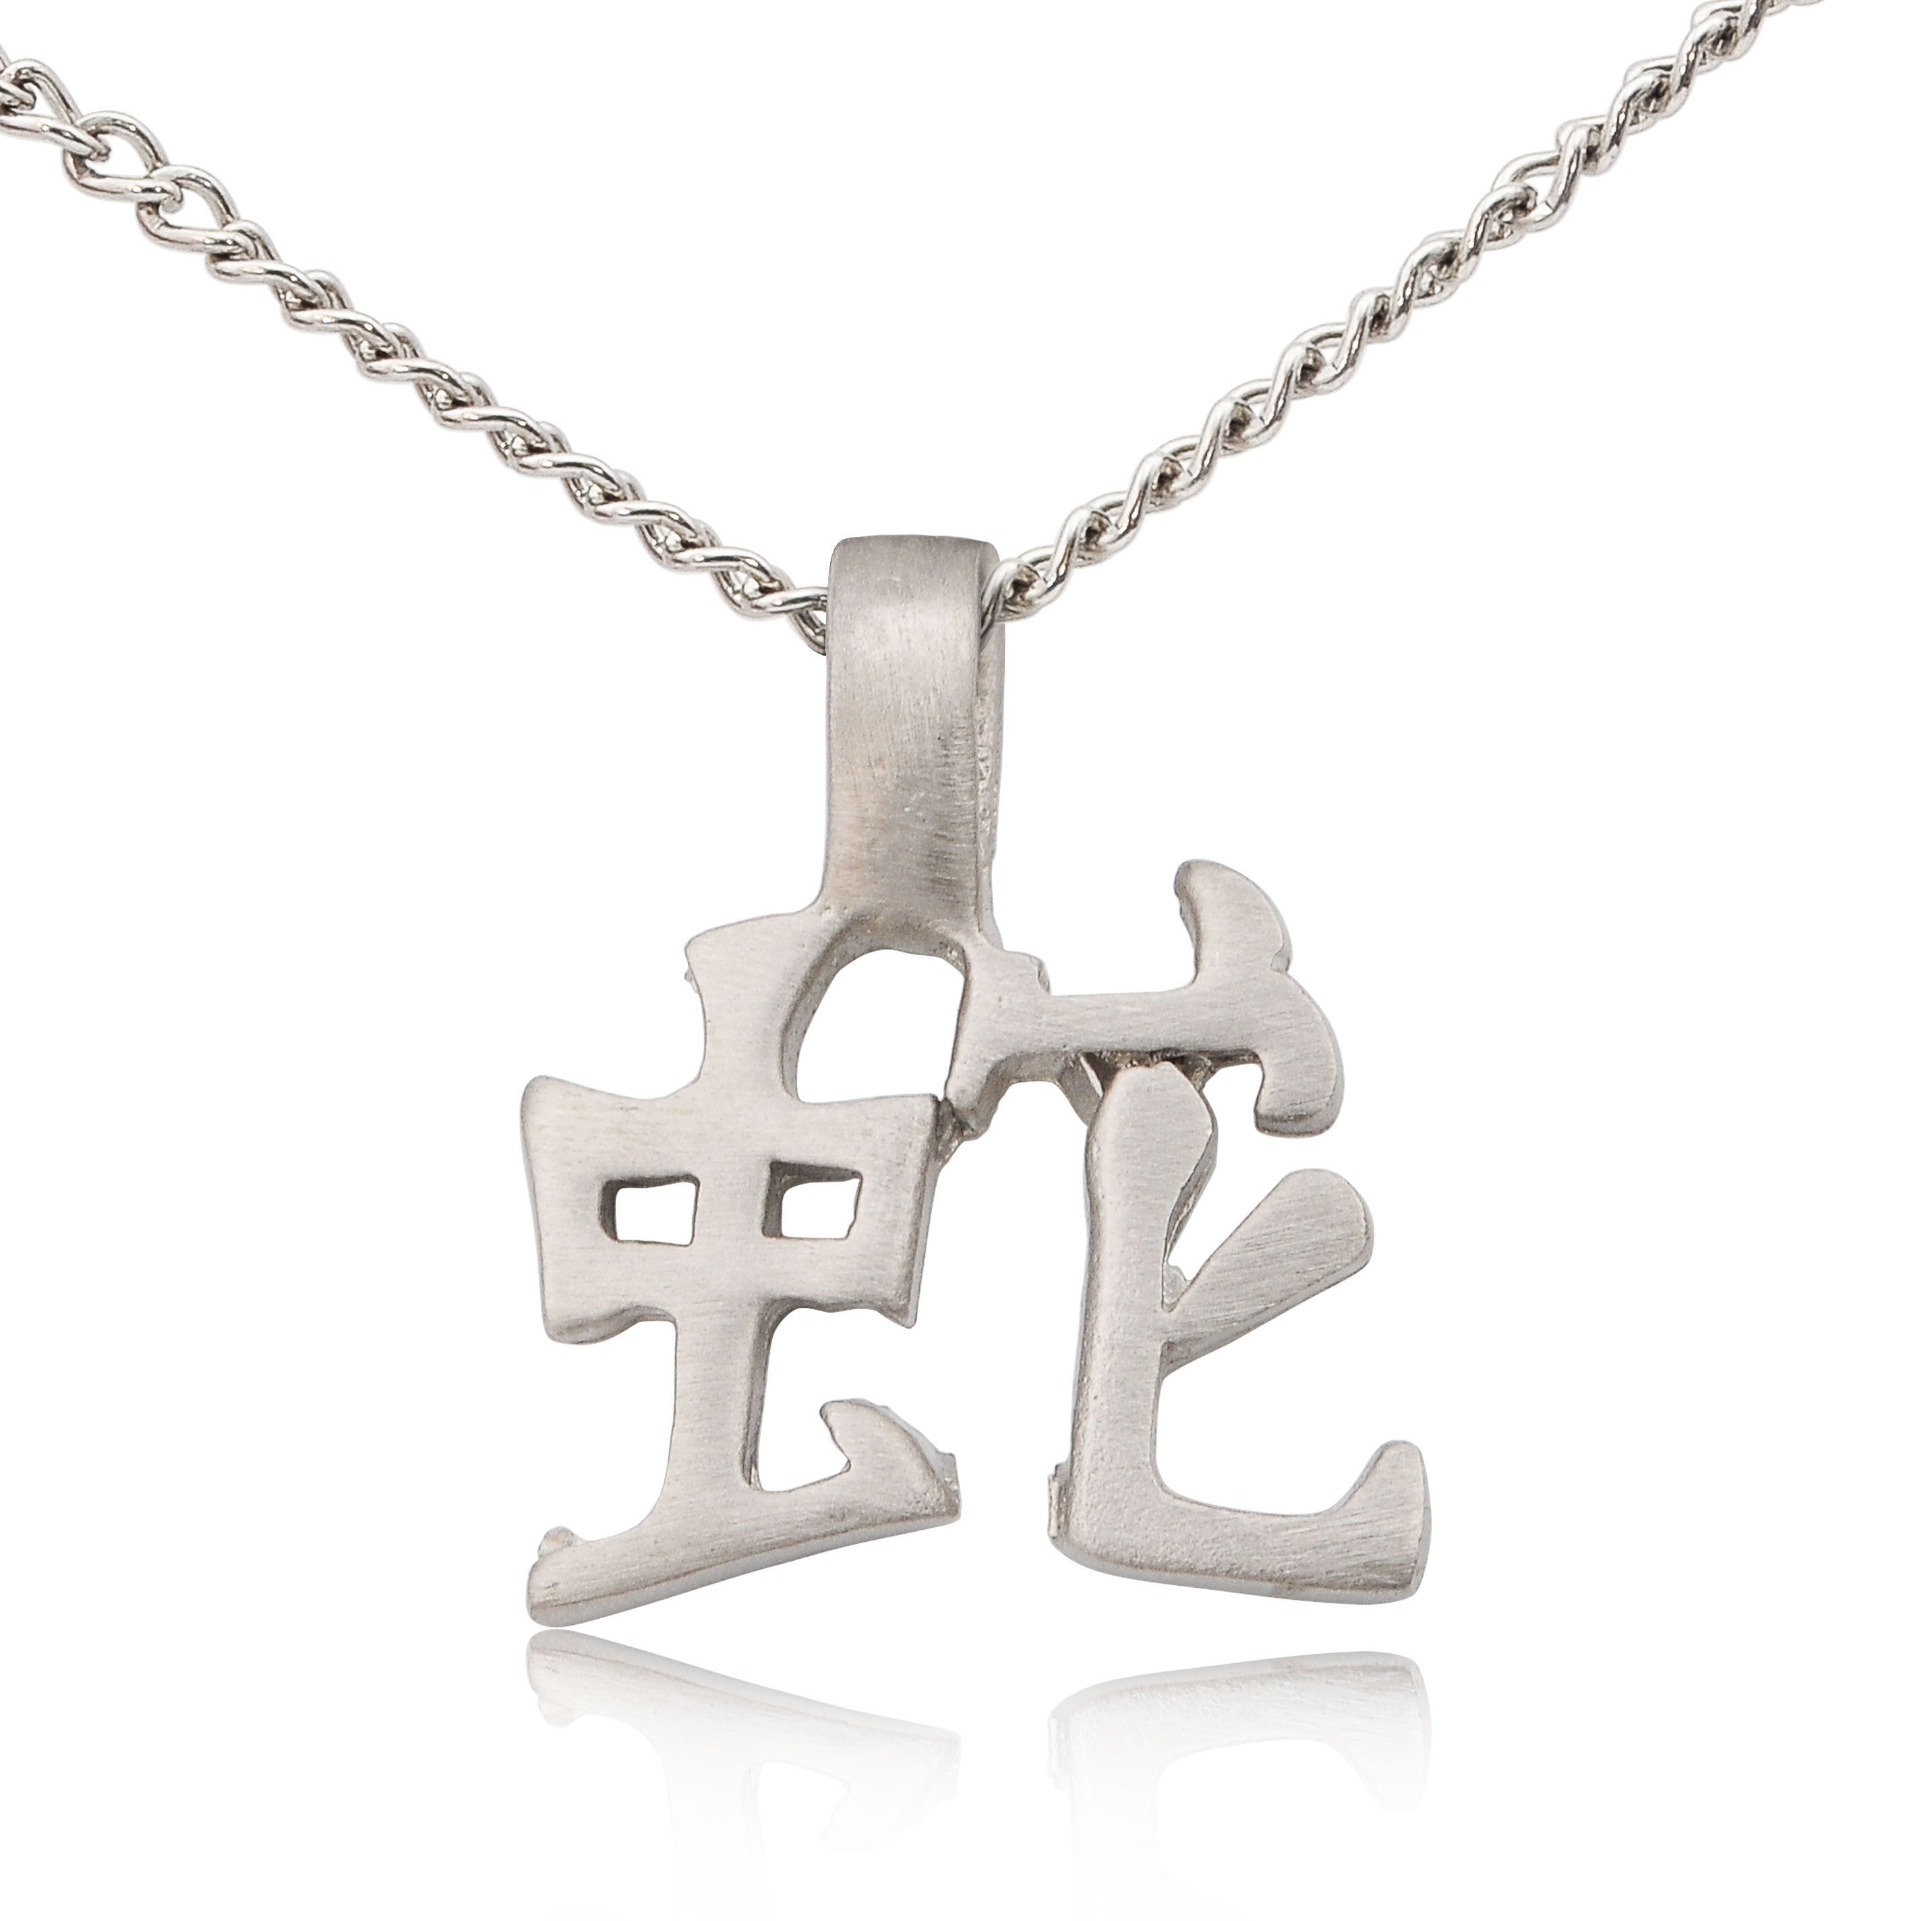 Engravable Chinese Zodiac Dog Tag Necklace: Zodiac Chinese Text Silver Pewter Charm Necklace Pendant